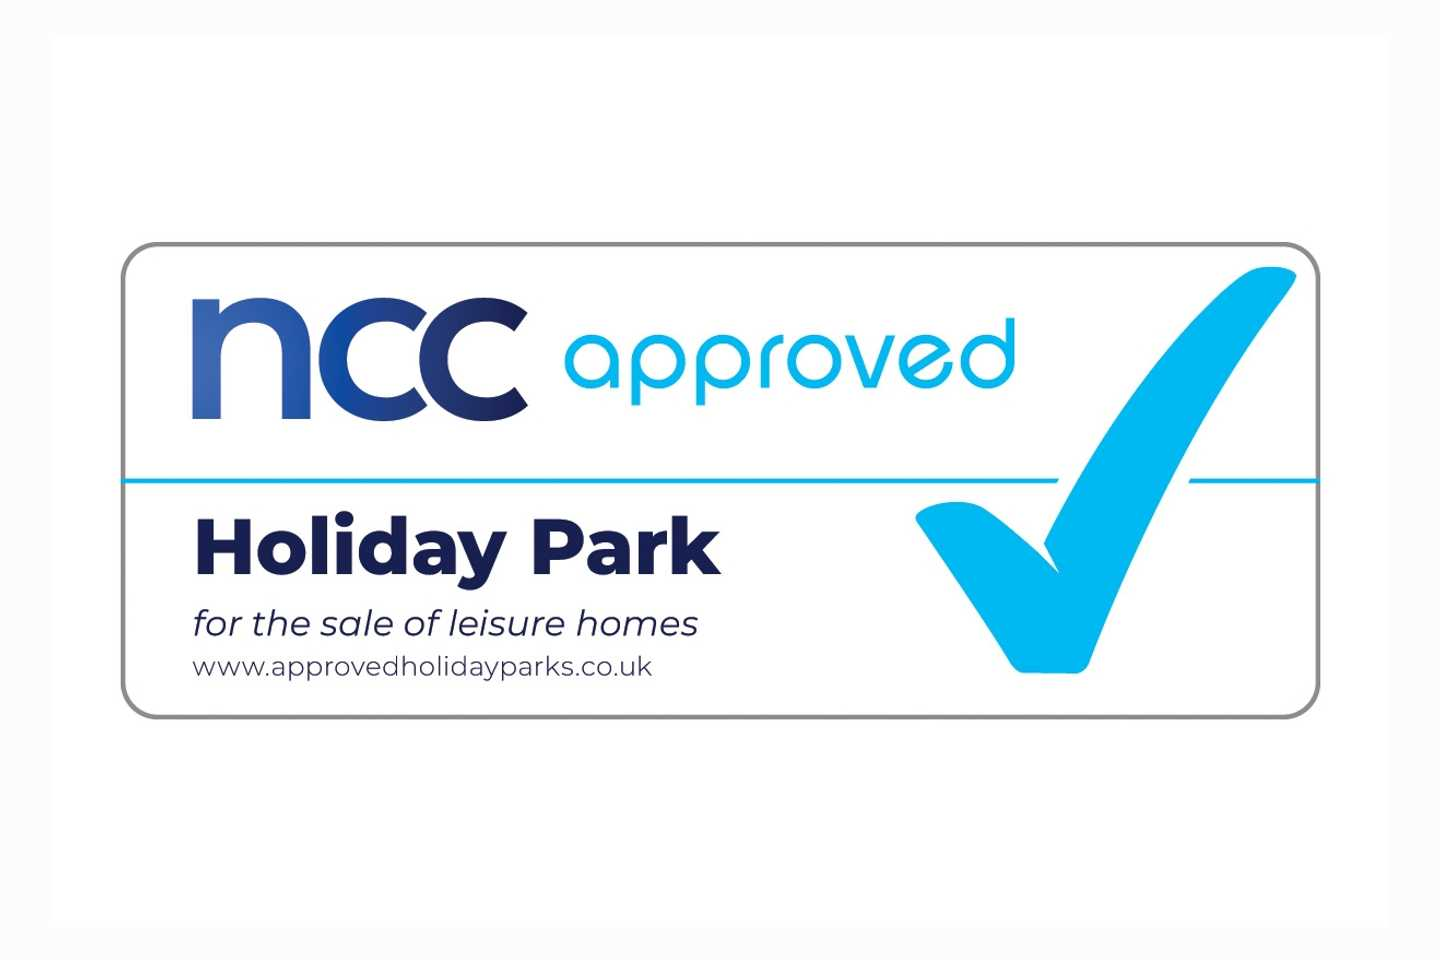 The NCC Approved logo